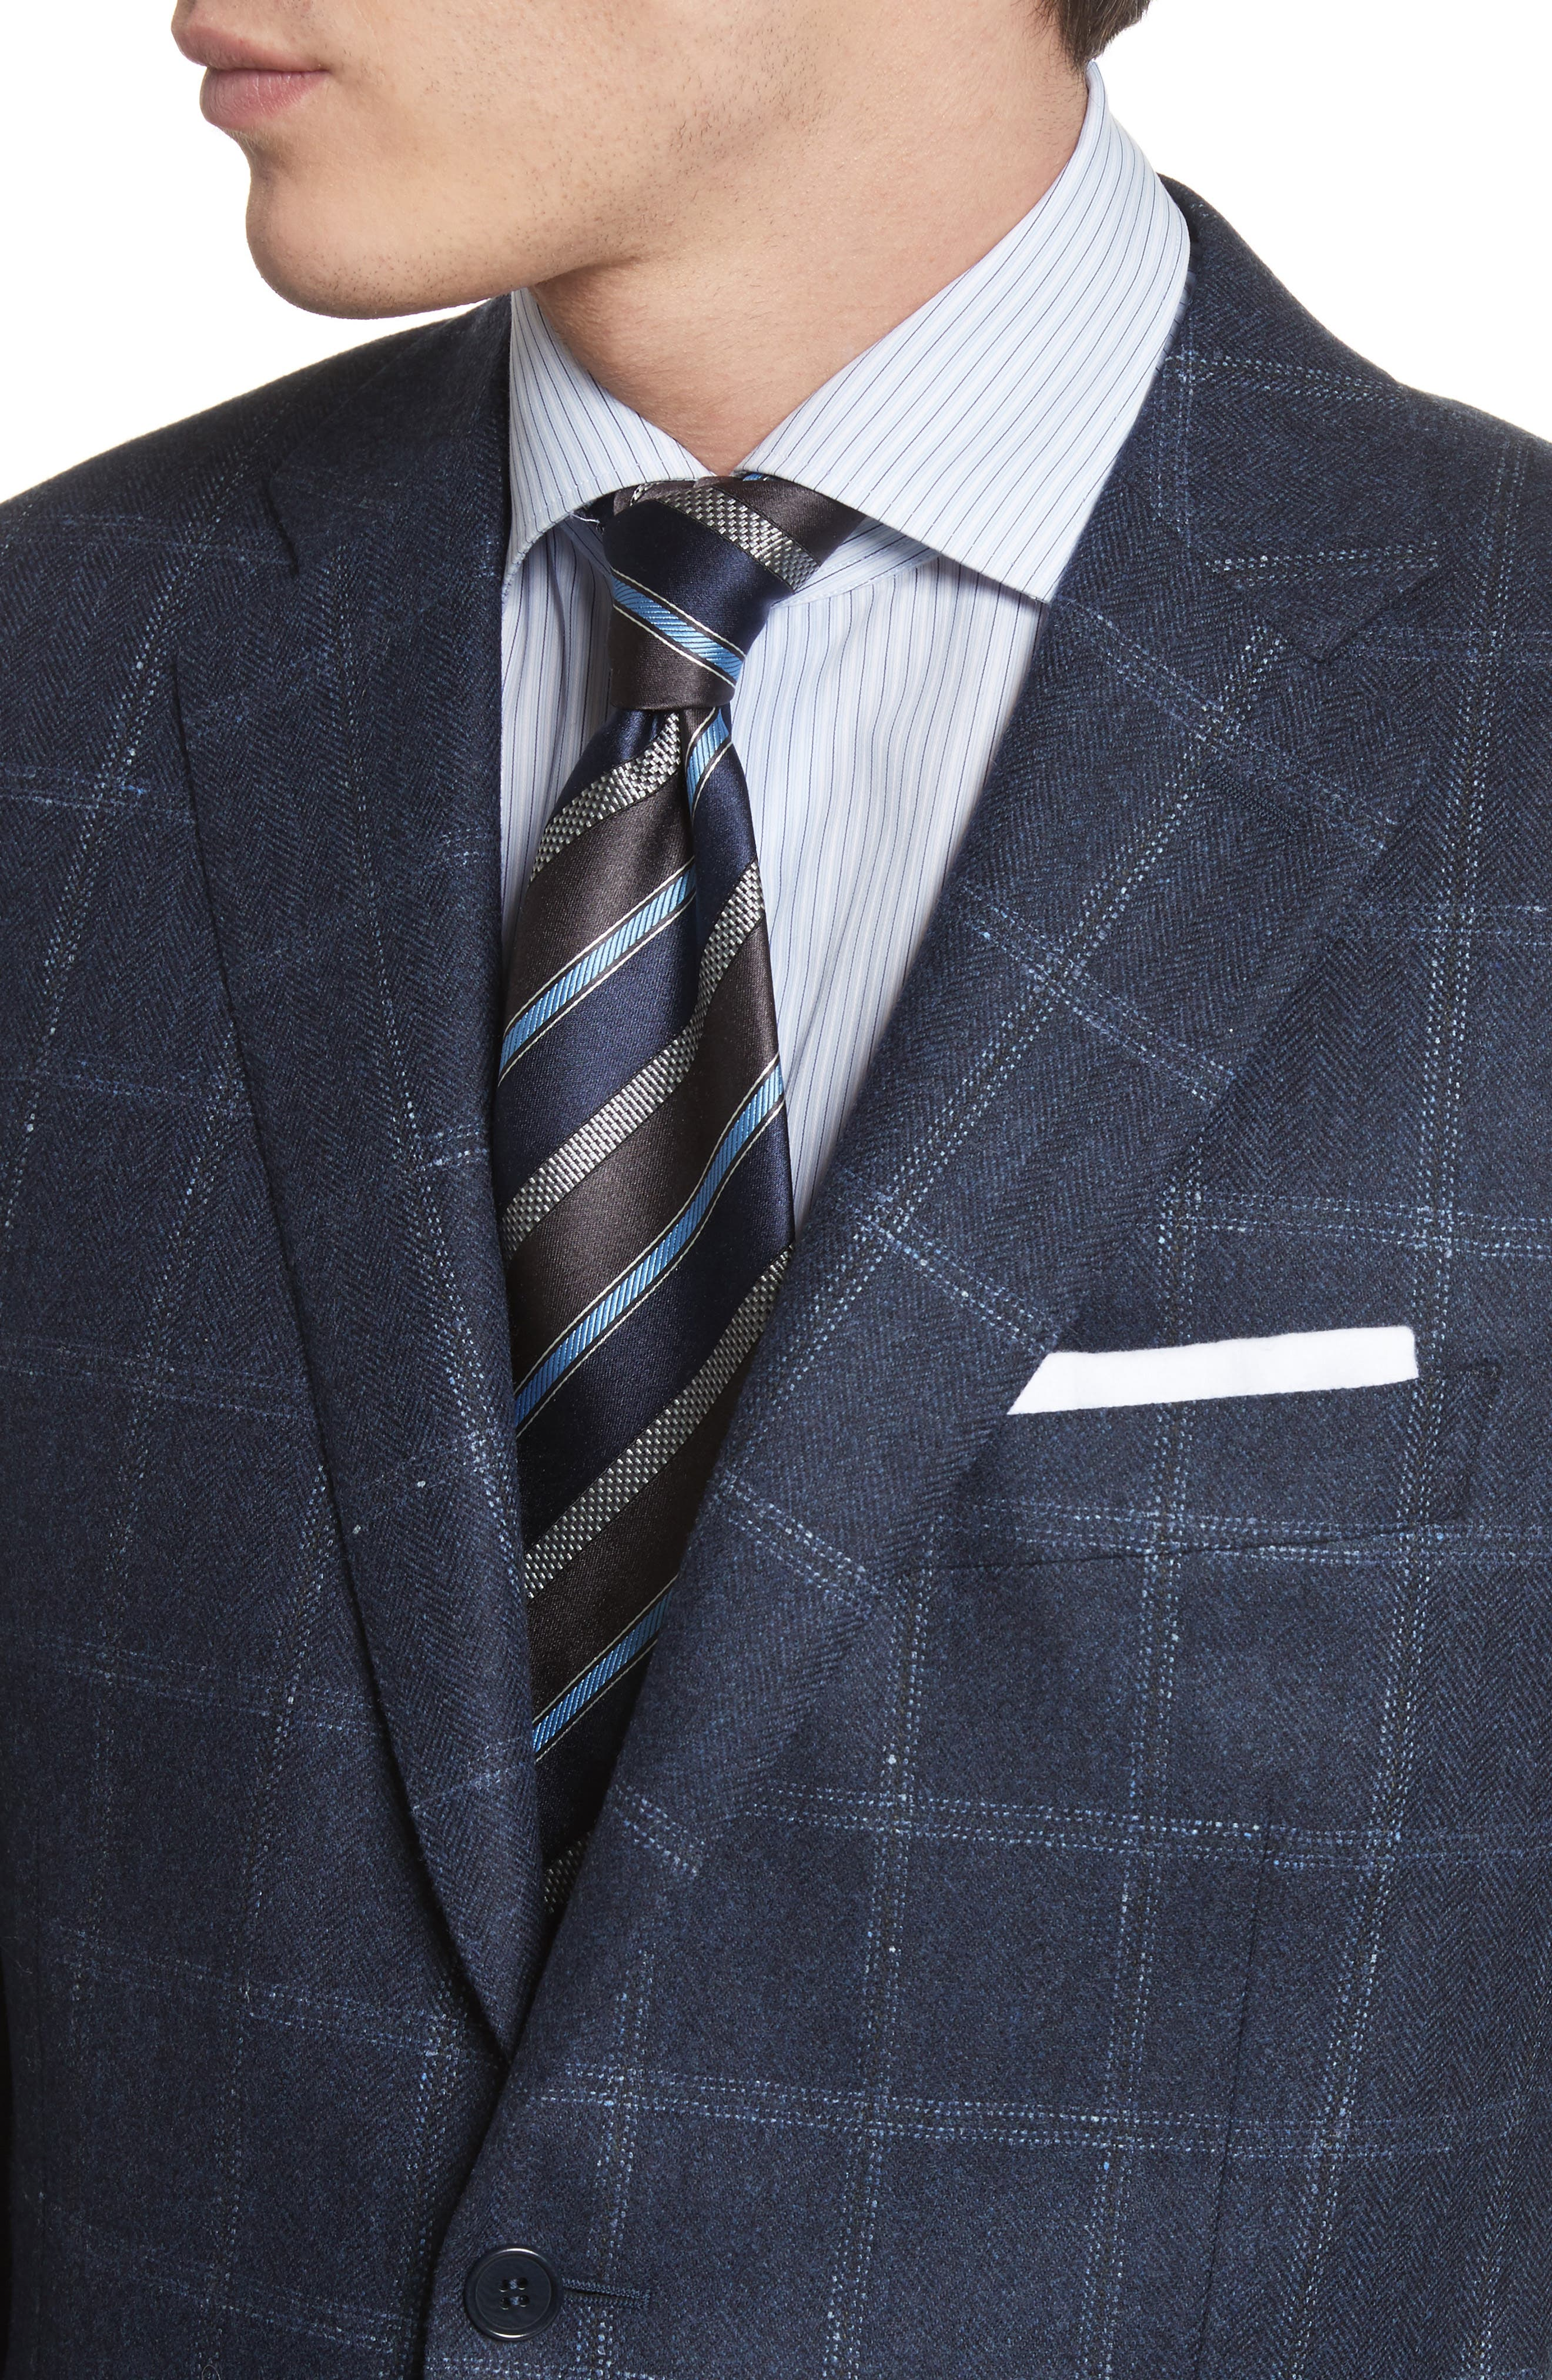 Classic Fit Windowpane Wool & Cashmere Sport Coat,                             Alternate thumbnail 4, color,